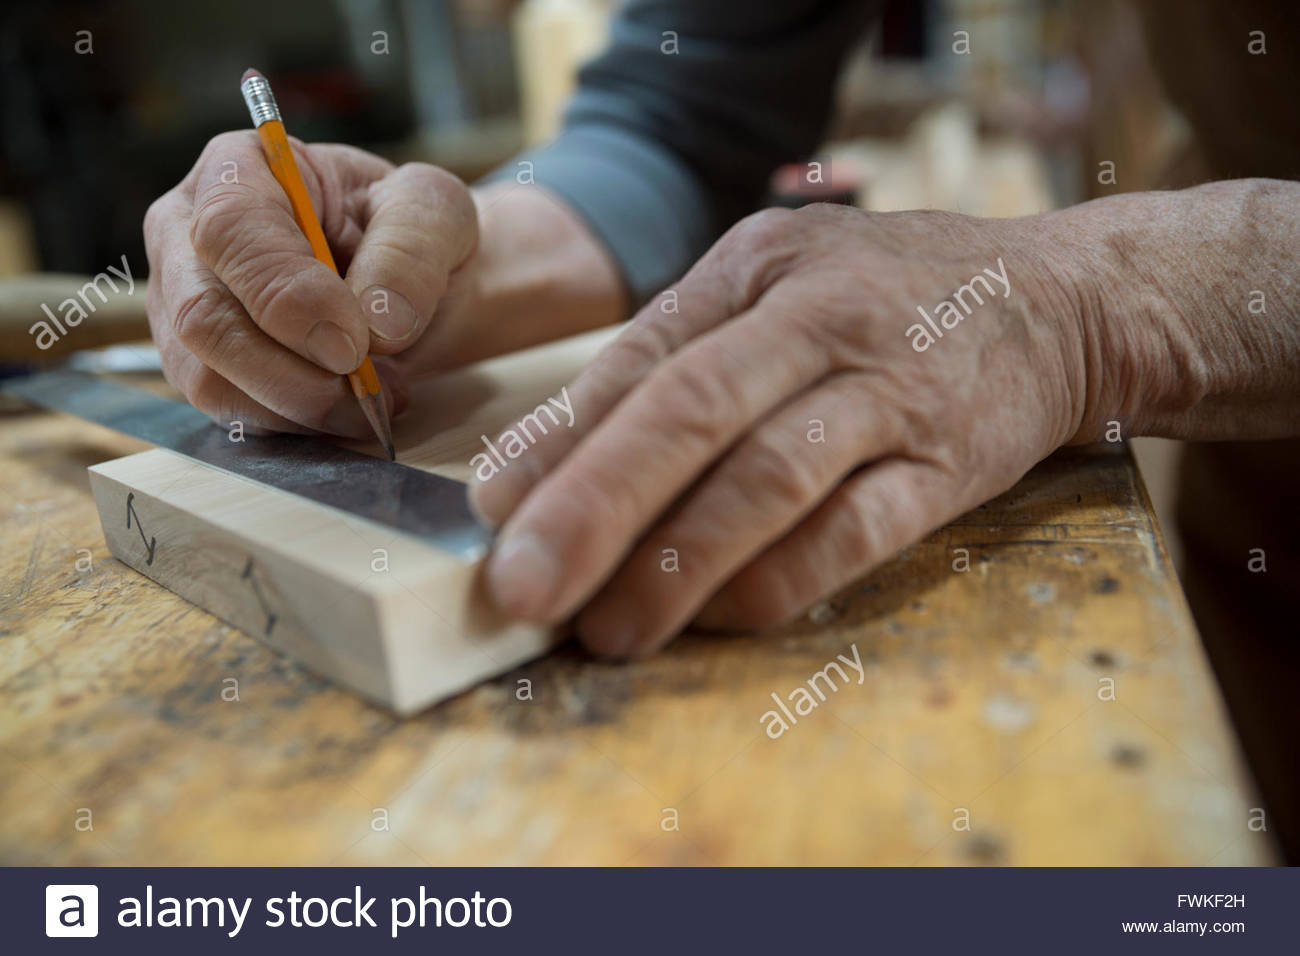 Close up carpenter measuring and marking wood piece - Stock Image